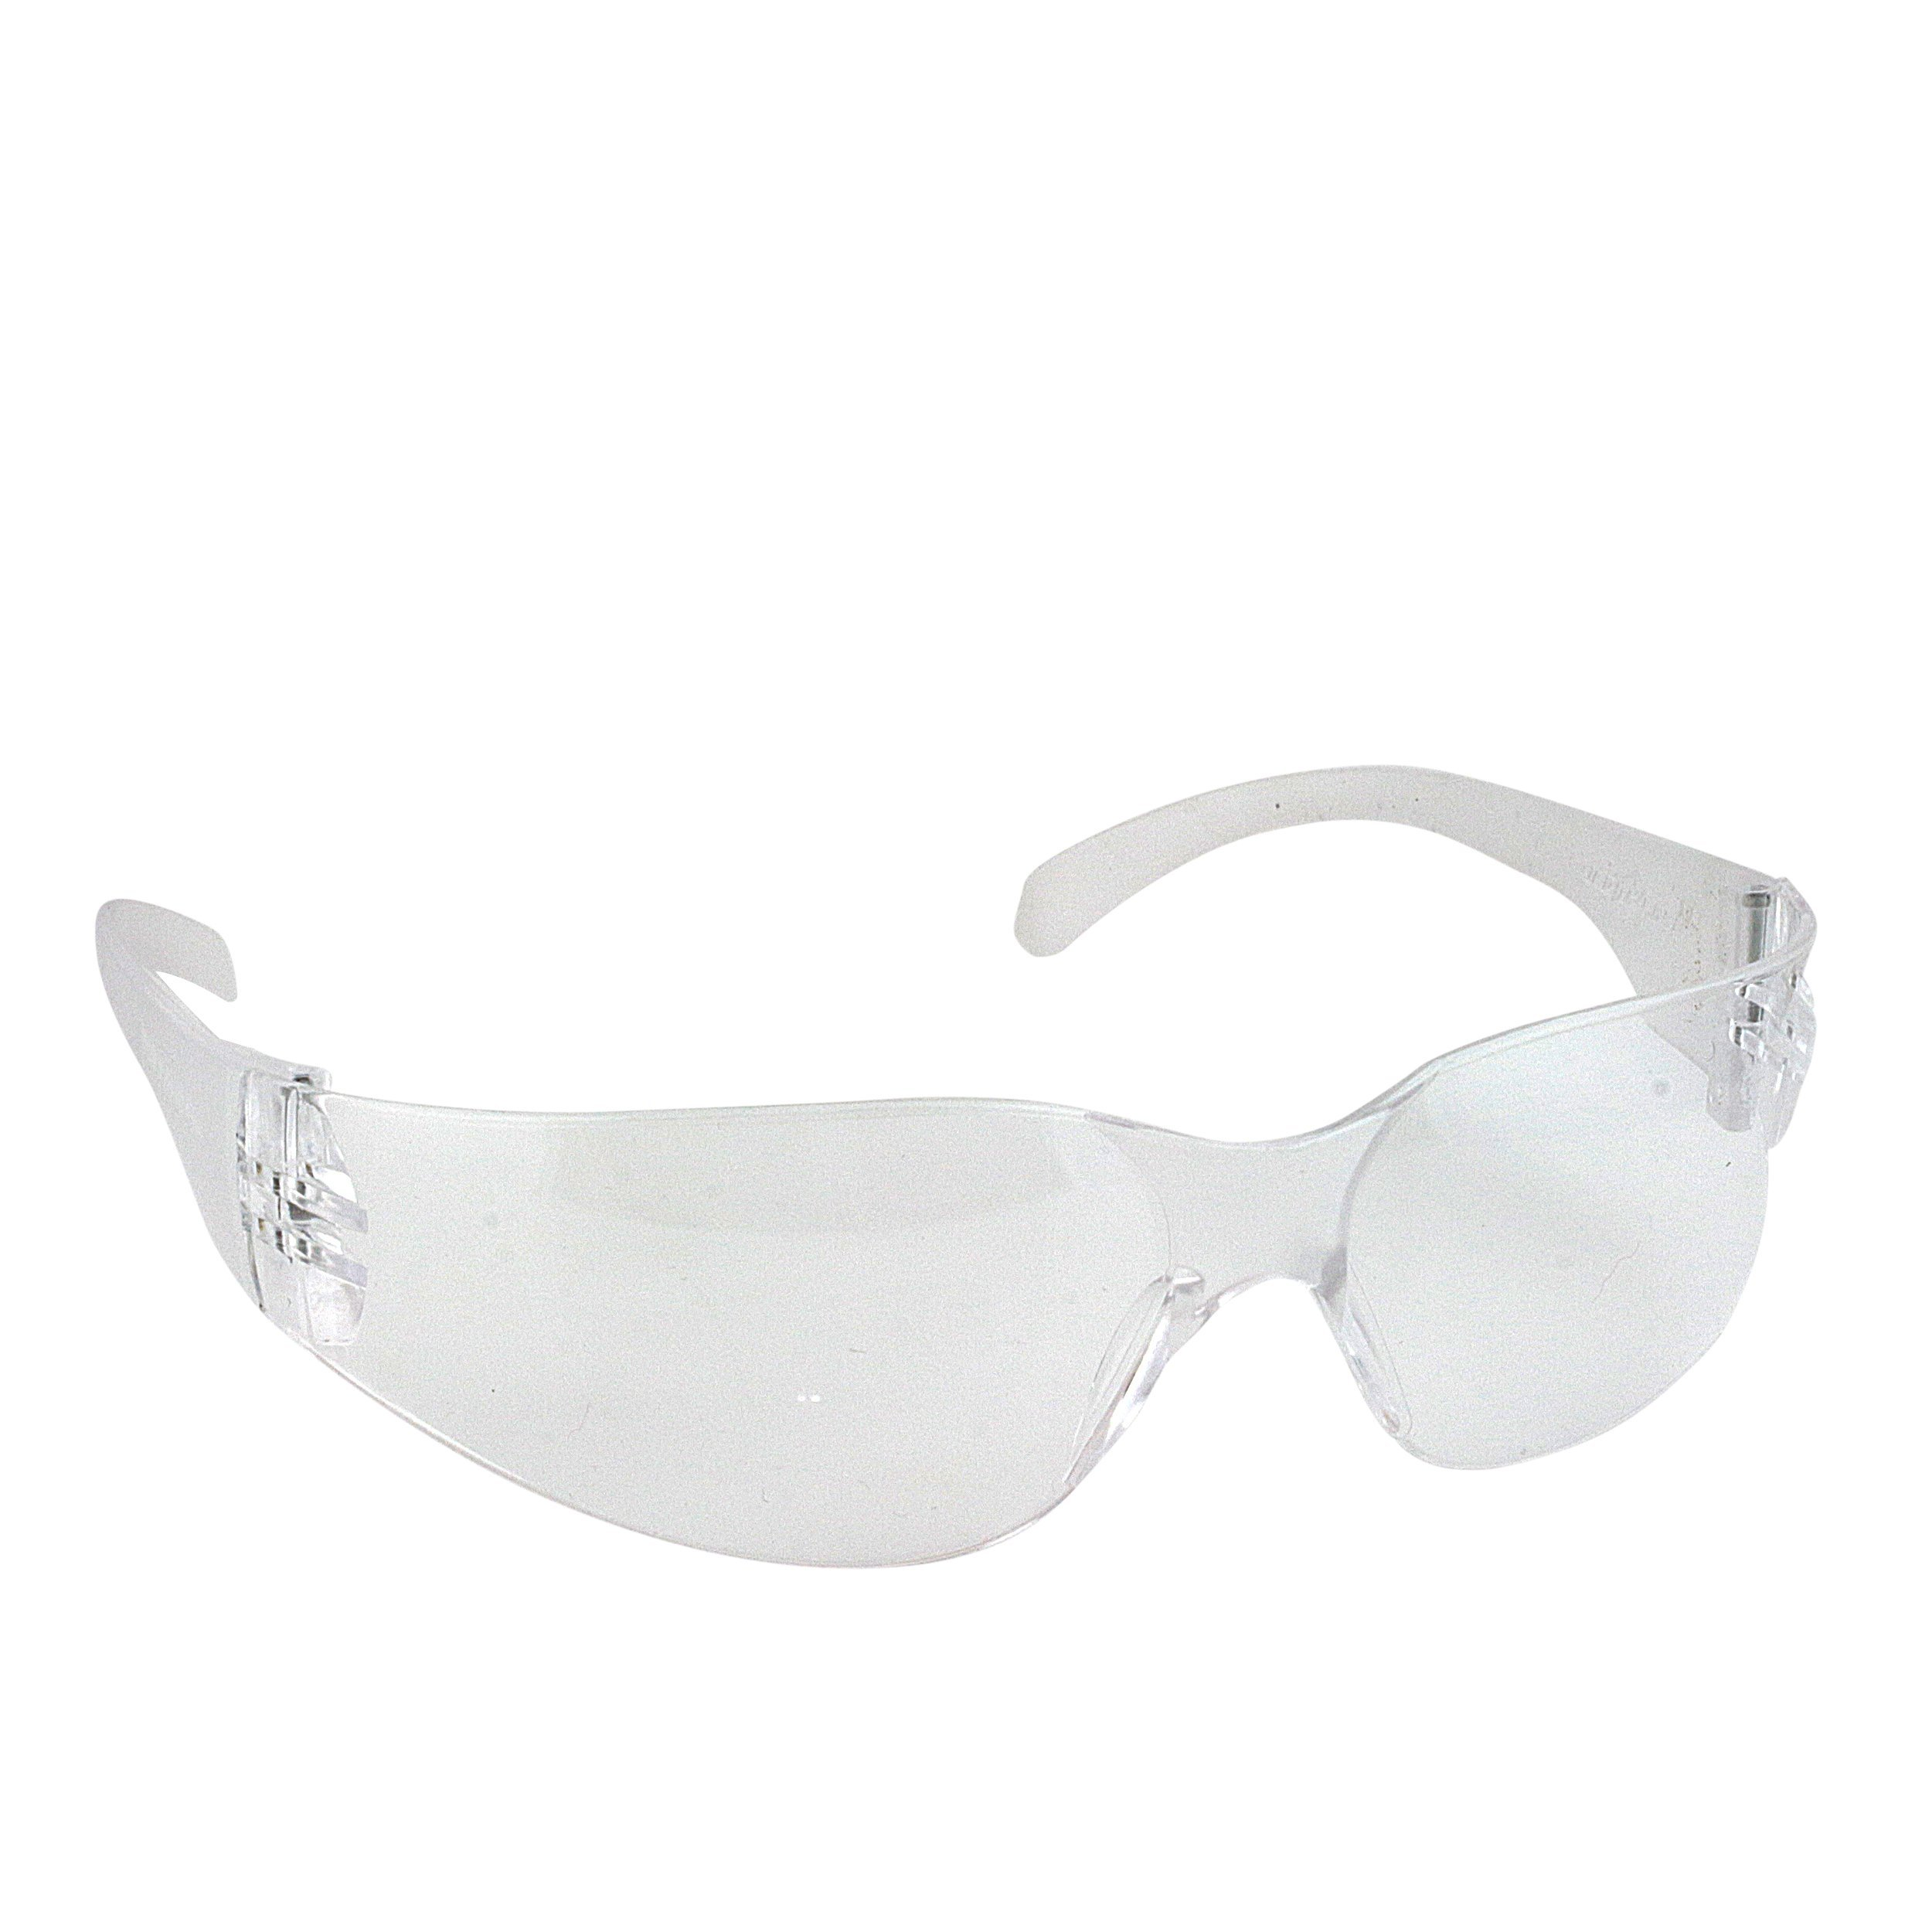 BISON LIFE Safety Glasses, One Size, Clear Polycarbonate Lens, 12 per Box (1 box) by BISON LIFE (Image #2)